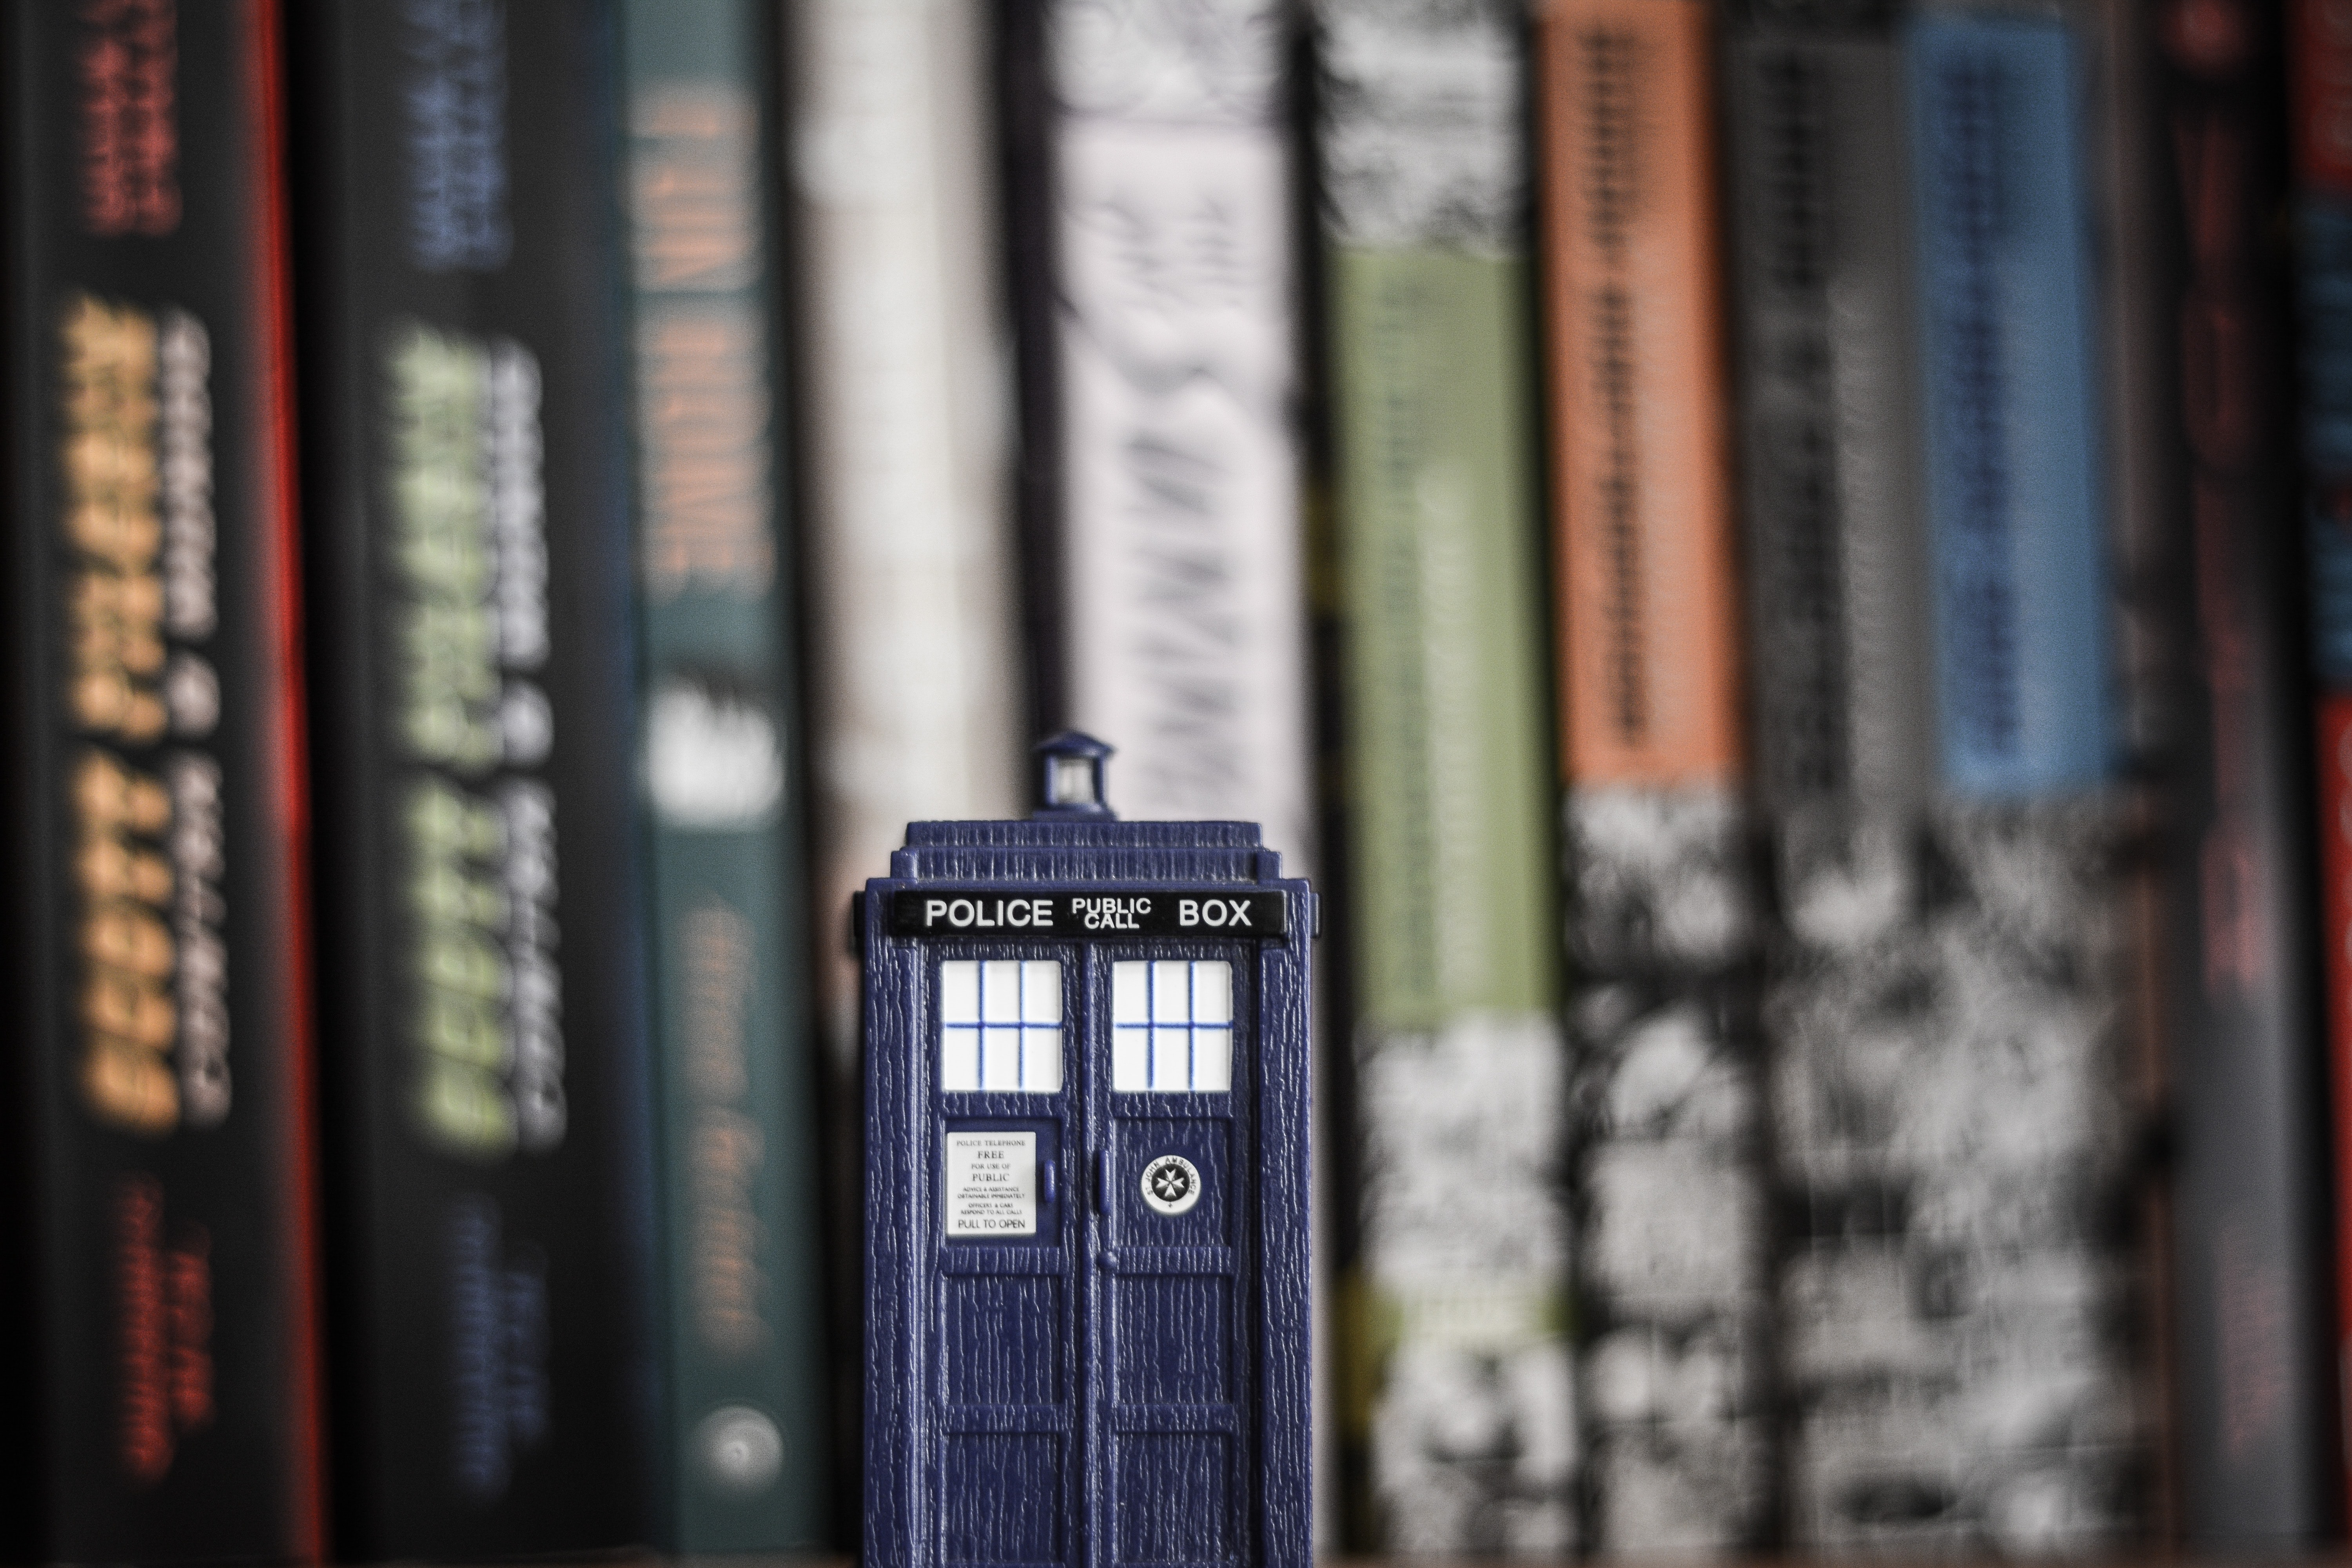 Image shows a small Tardis on a book shelf in front of a row of books